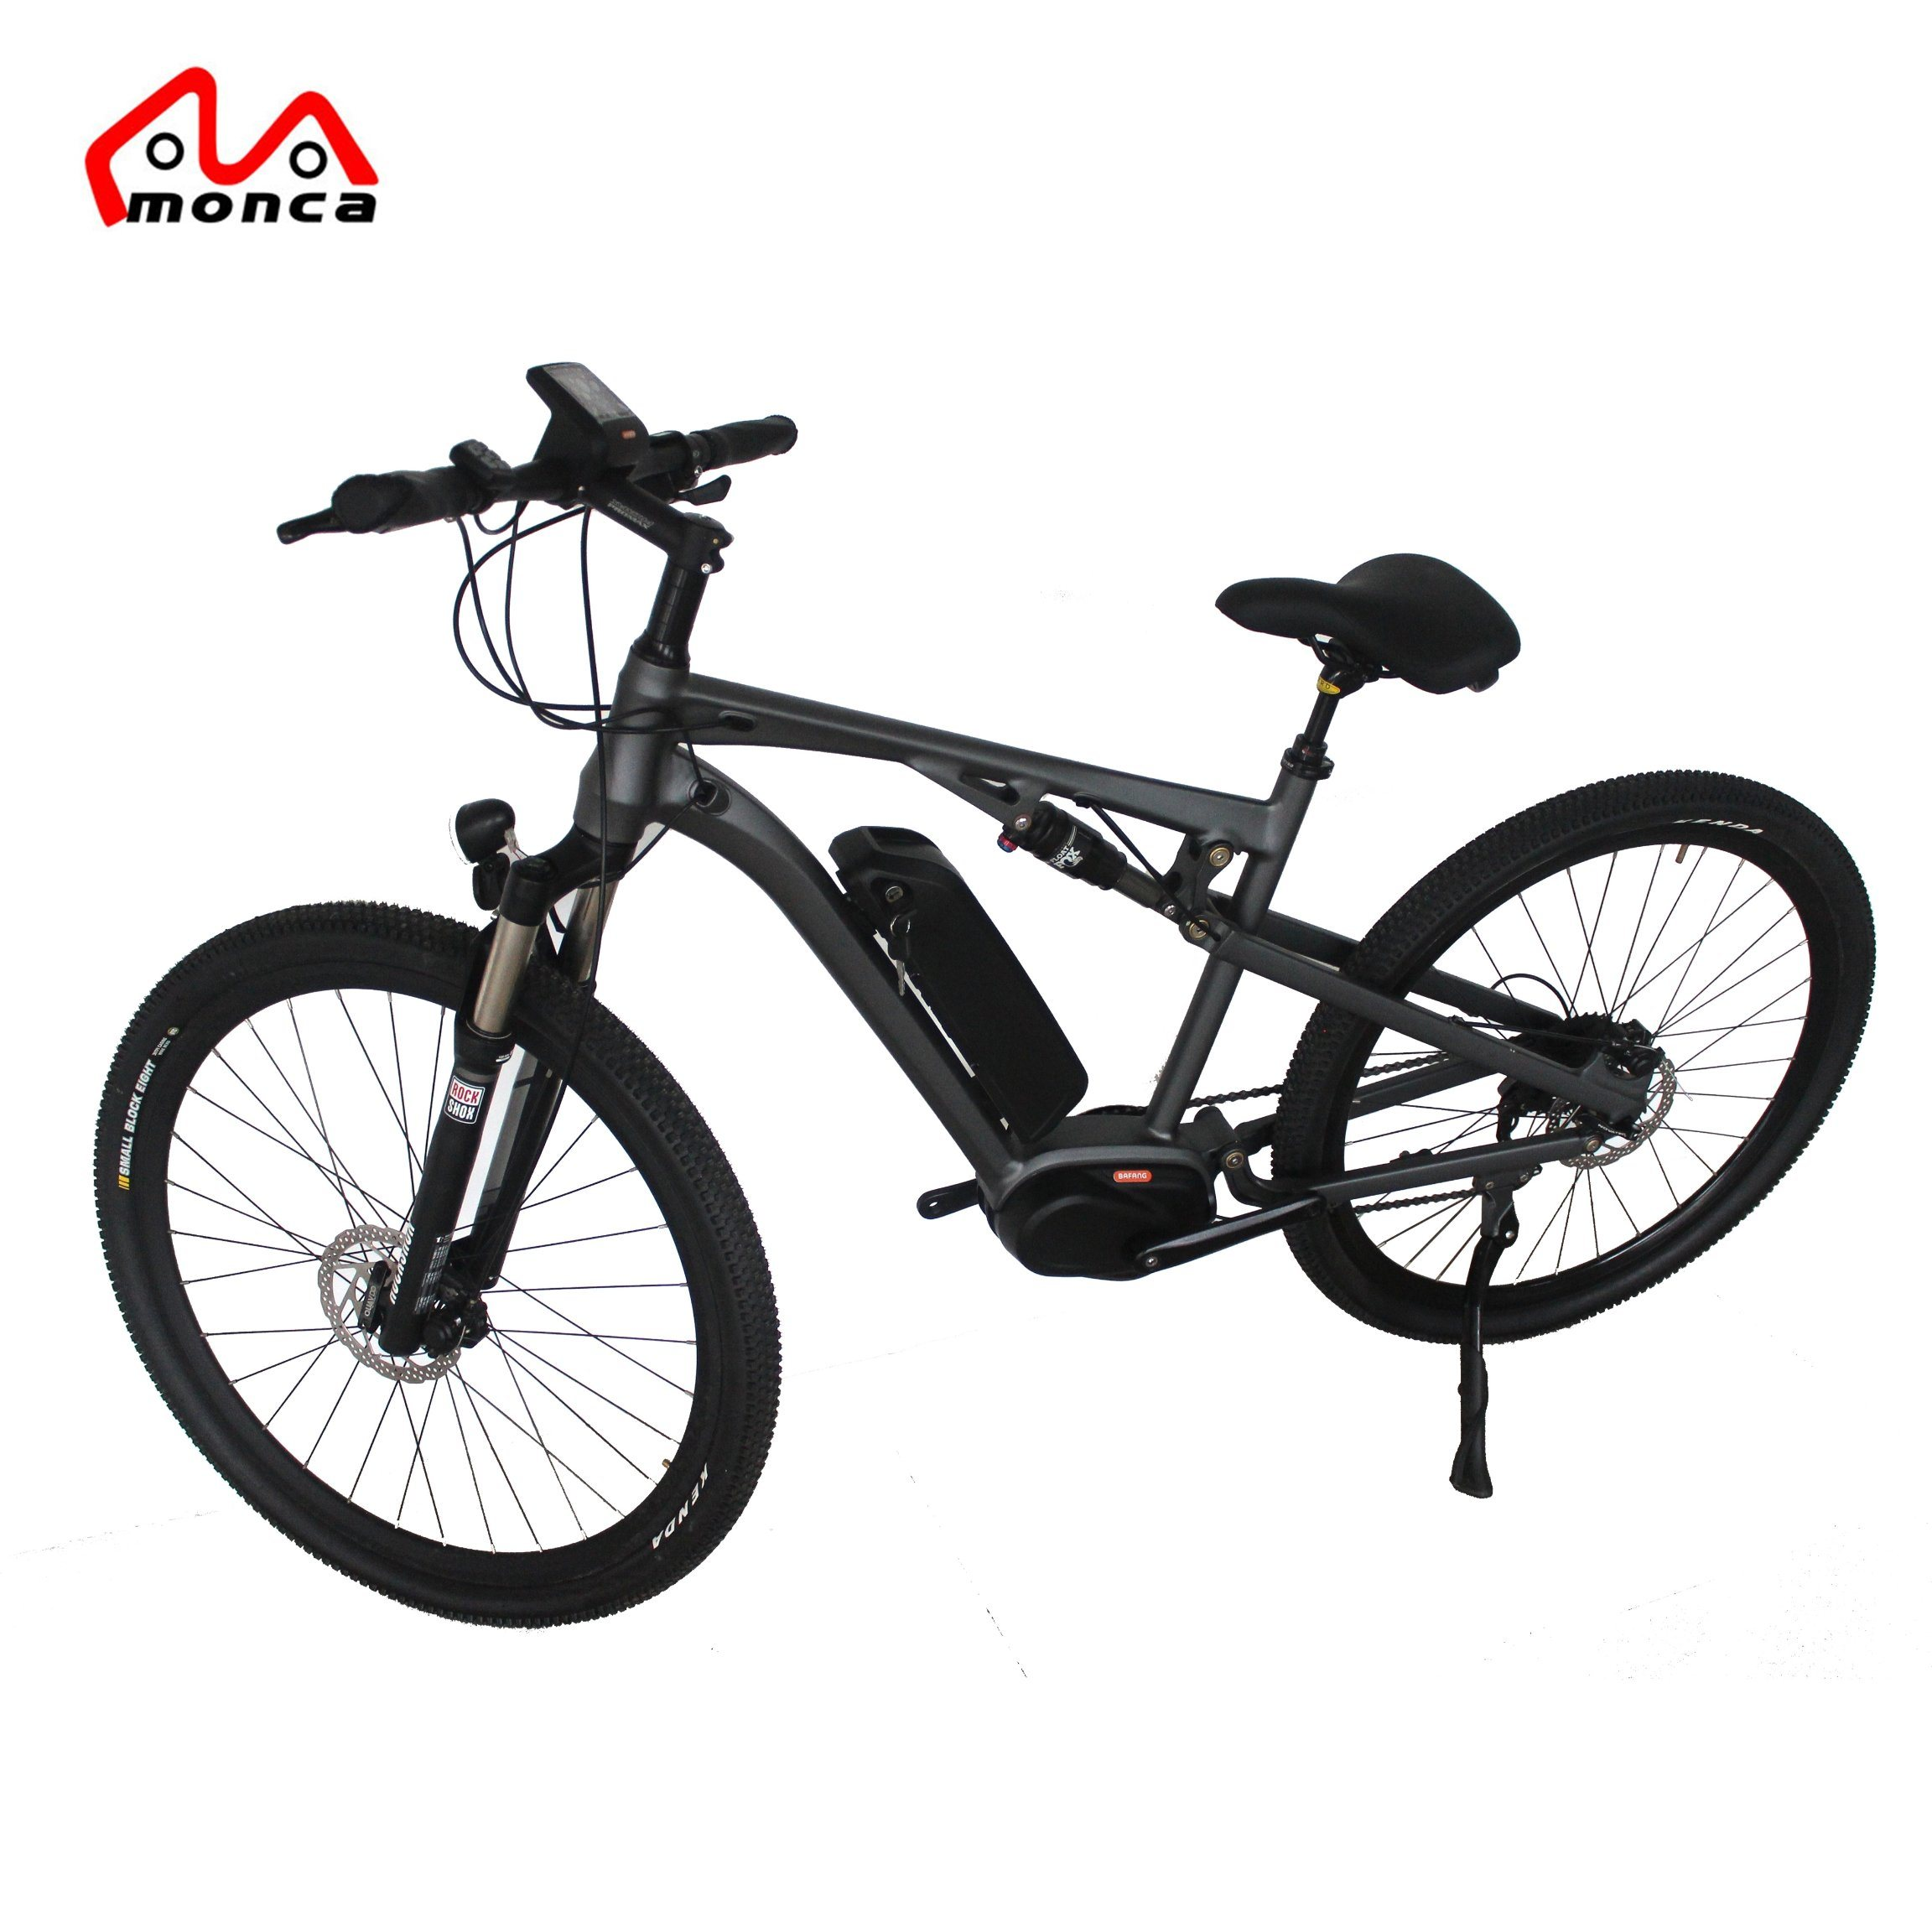 Road Bike Parts Bicycle Component Terminology Explained Veloreviews China Manufacturers Suppliers 2304x2304